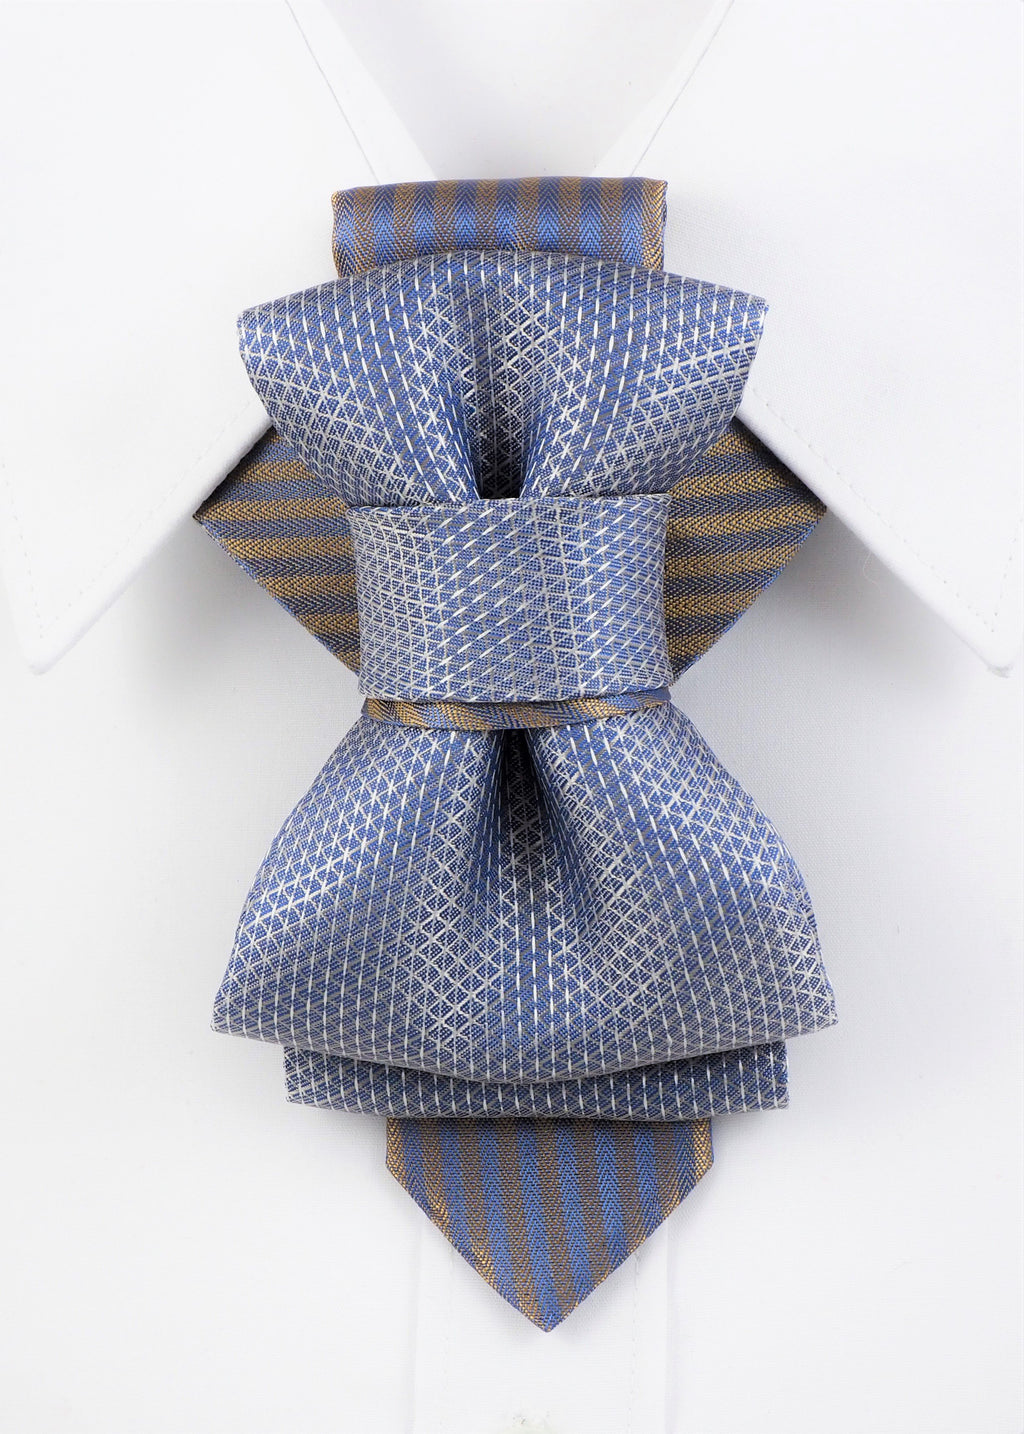 Hopper Bow Tie, Tie for wedding suite HOPPER TIE AINIS hopper tie Bow tie Original design, men's performances, neckties, high-end fashion,  fashion trends, star ties, Best bow tie